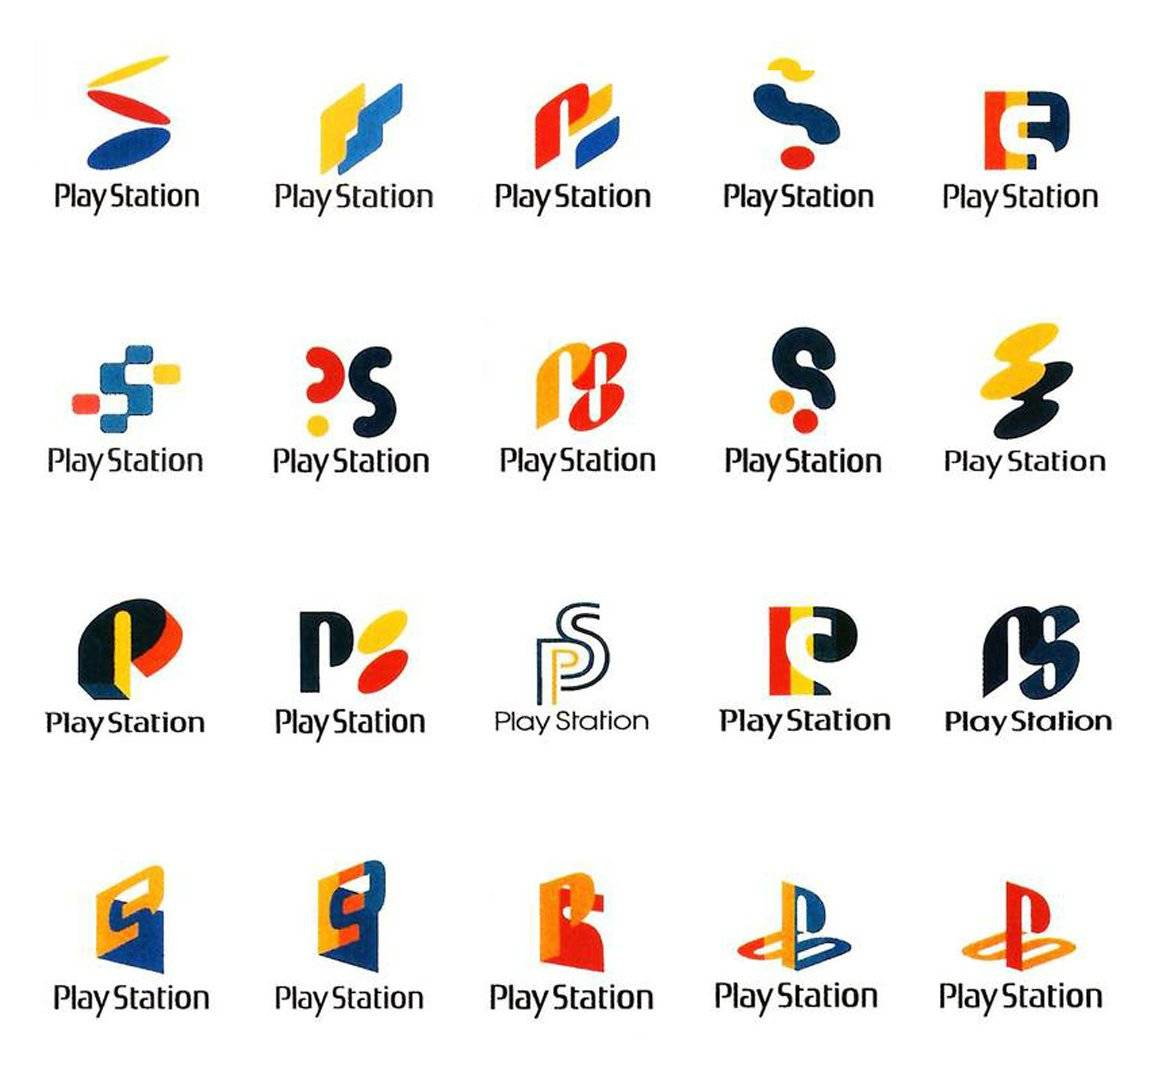 Sony Playstation 1 Logo Design Ideas and Concepts | The Logo Smith